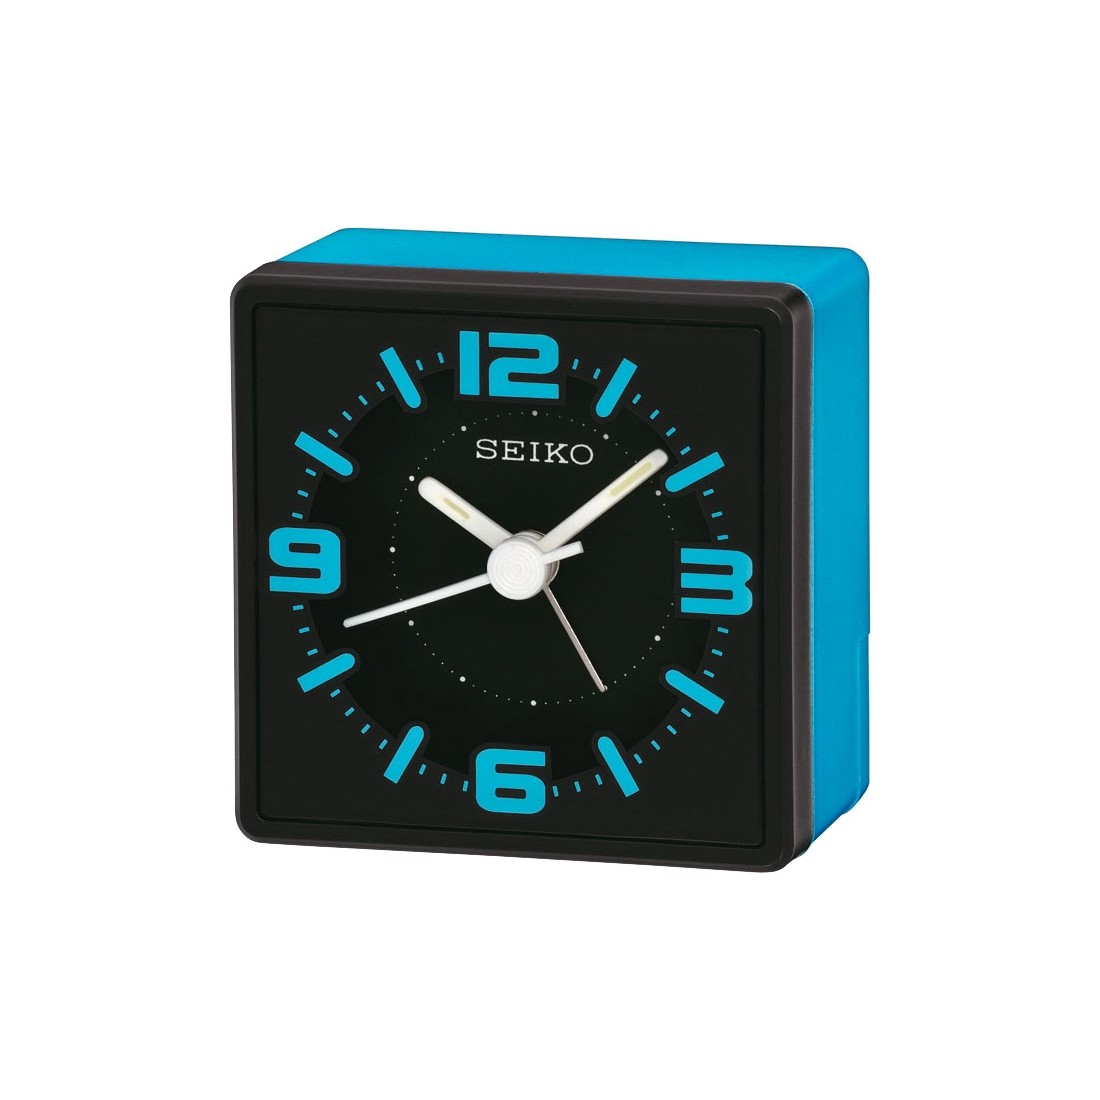 Seiko Analogue Bedside Alarm Clock - Blue QHE091L